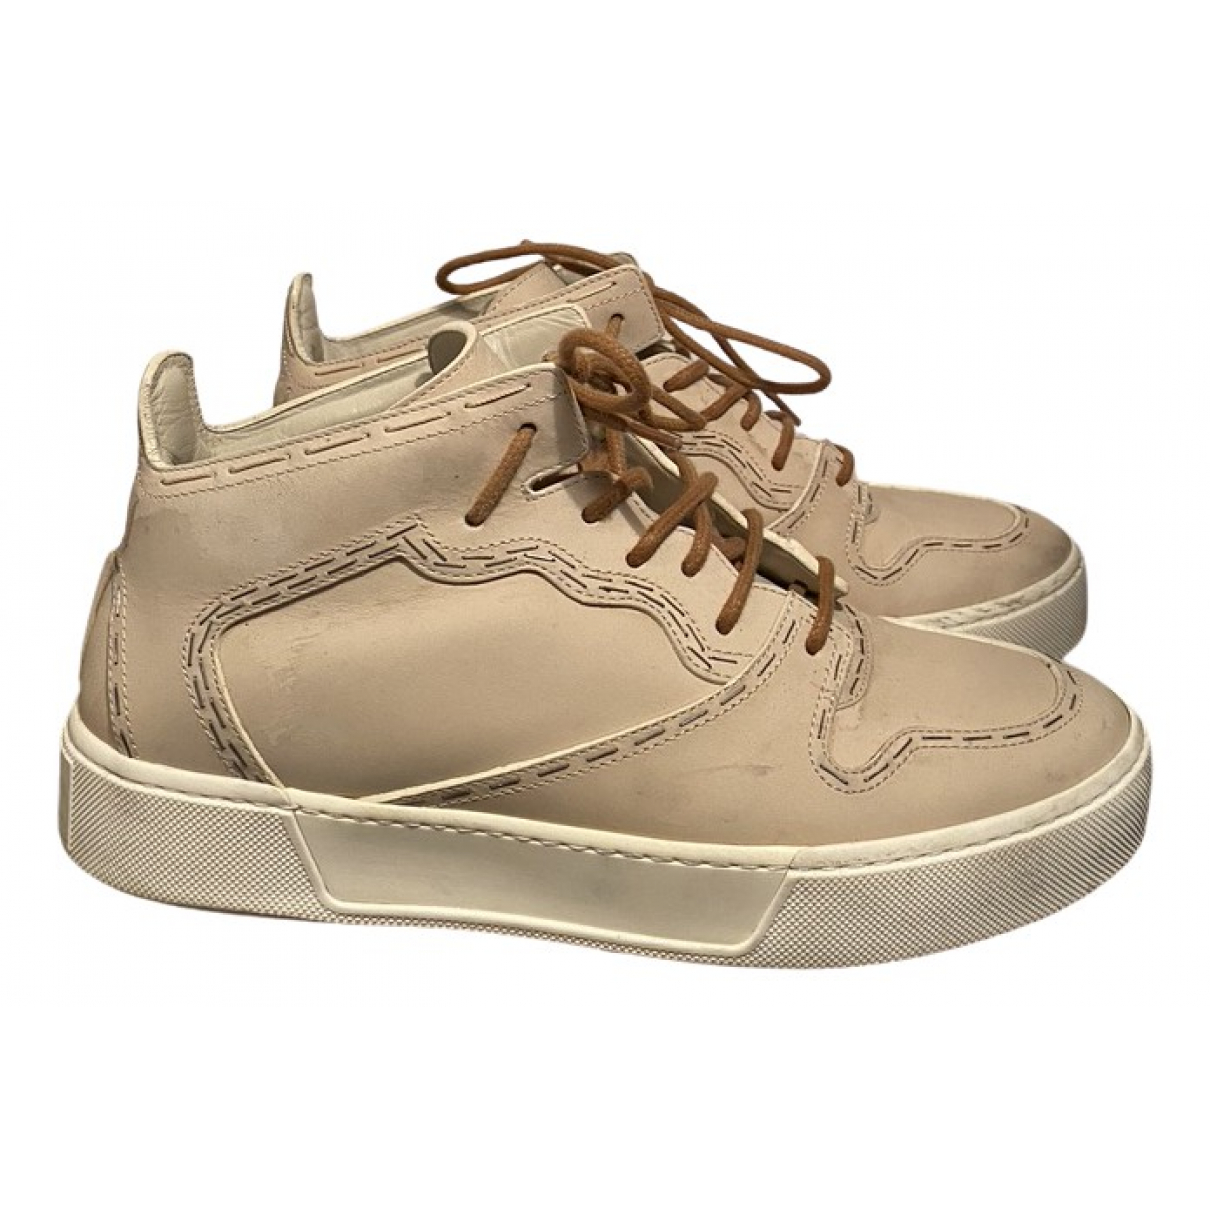 Balenciaga N Beige Leather Trainers for Women 39 EU